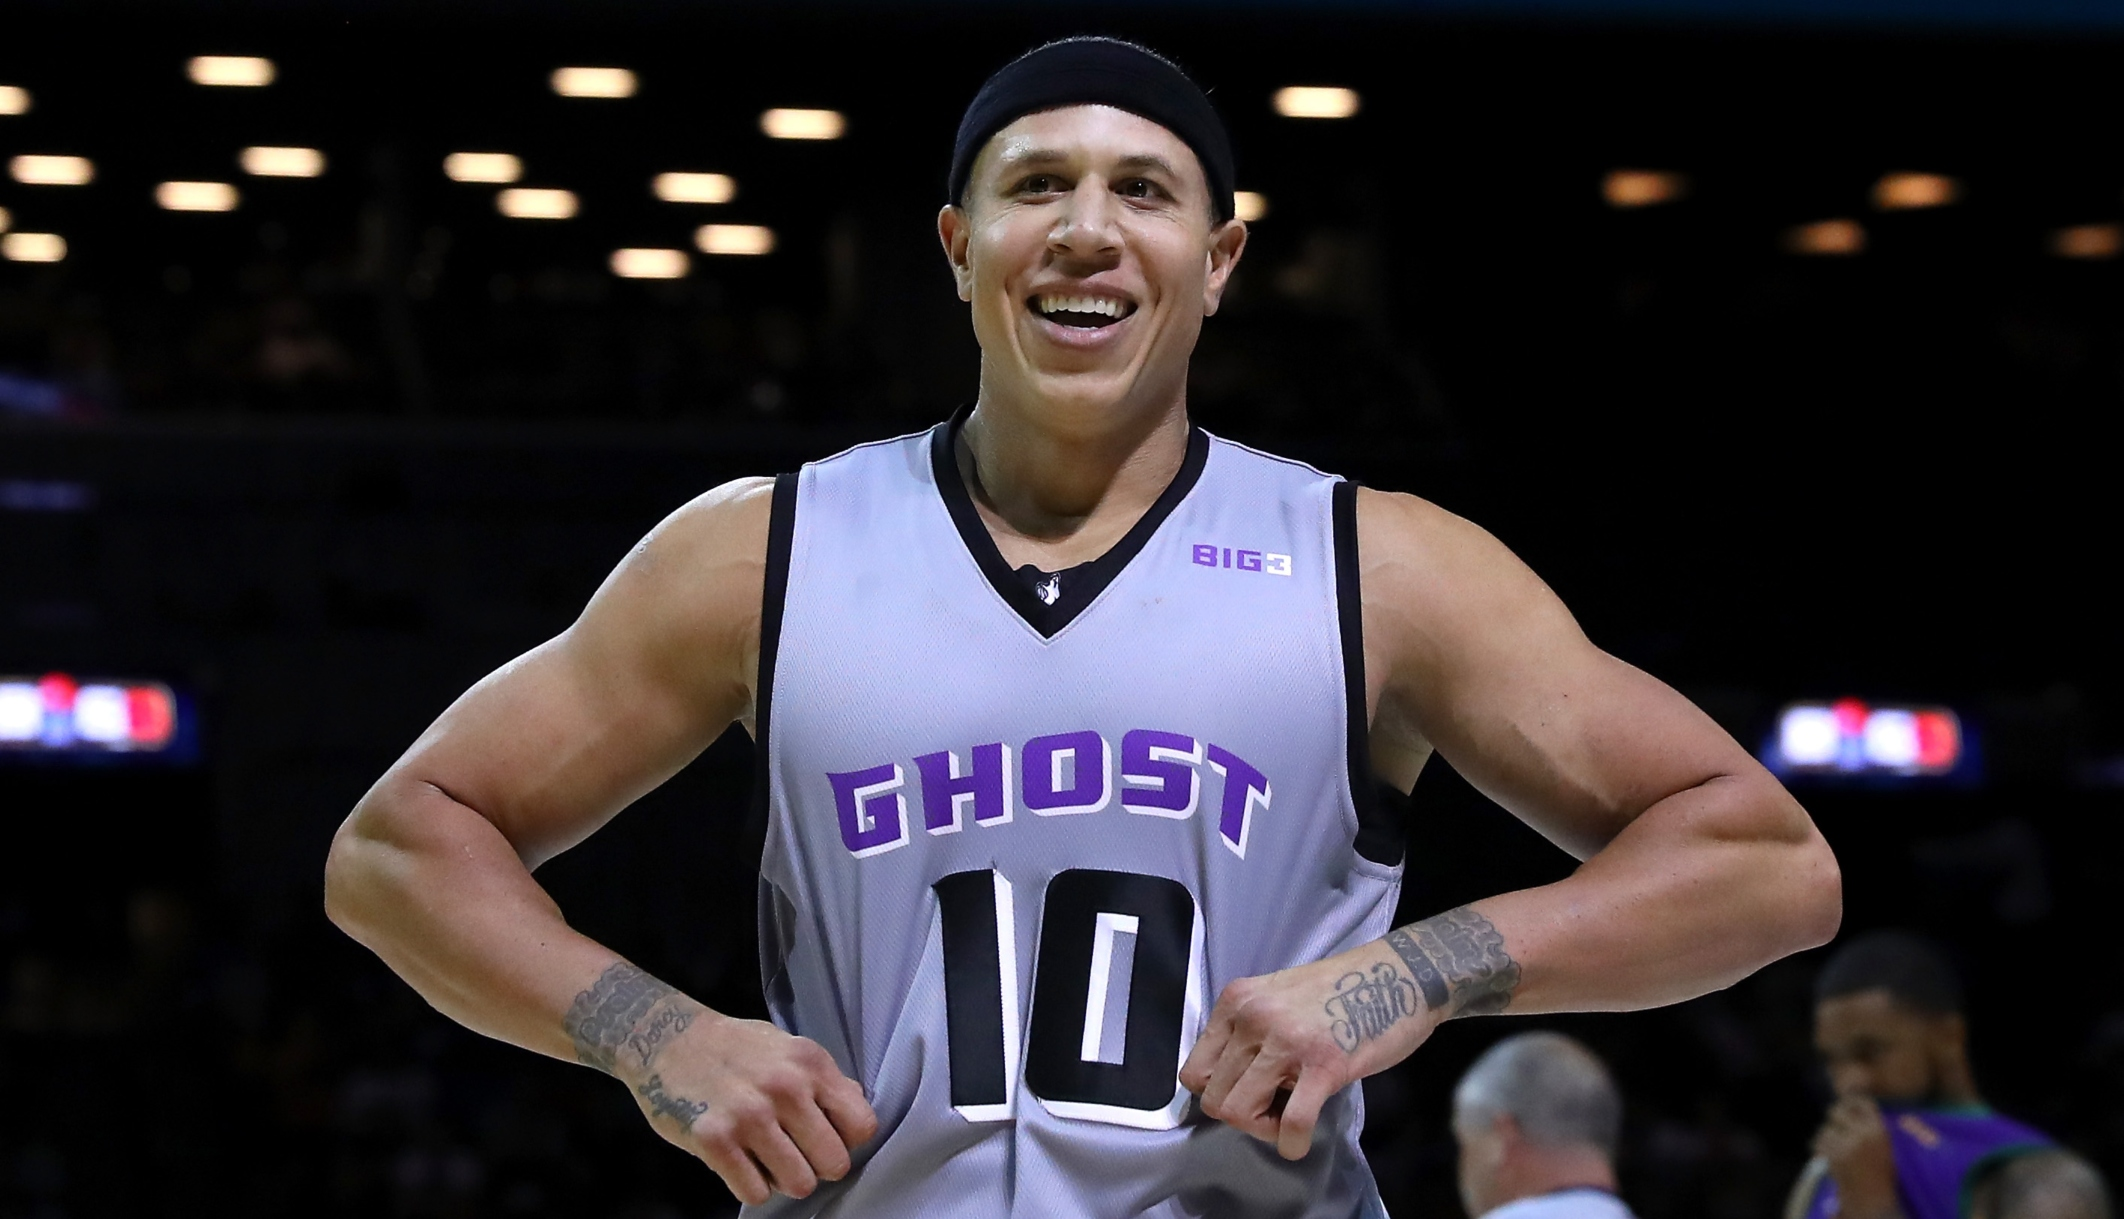 Mike Bibby pictured here during a 2017 game with the Ghost Ballers